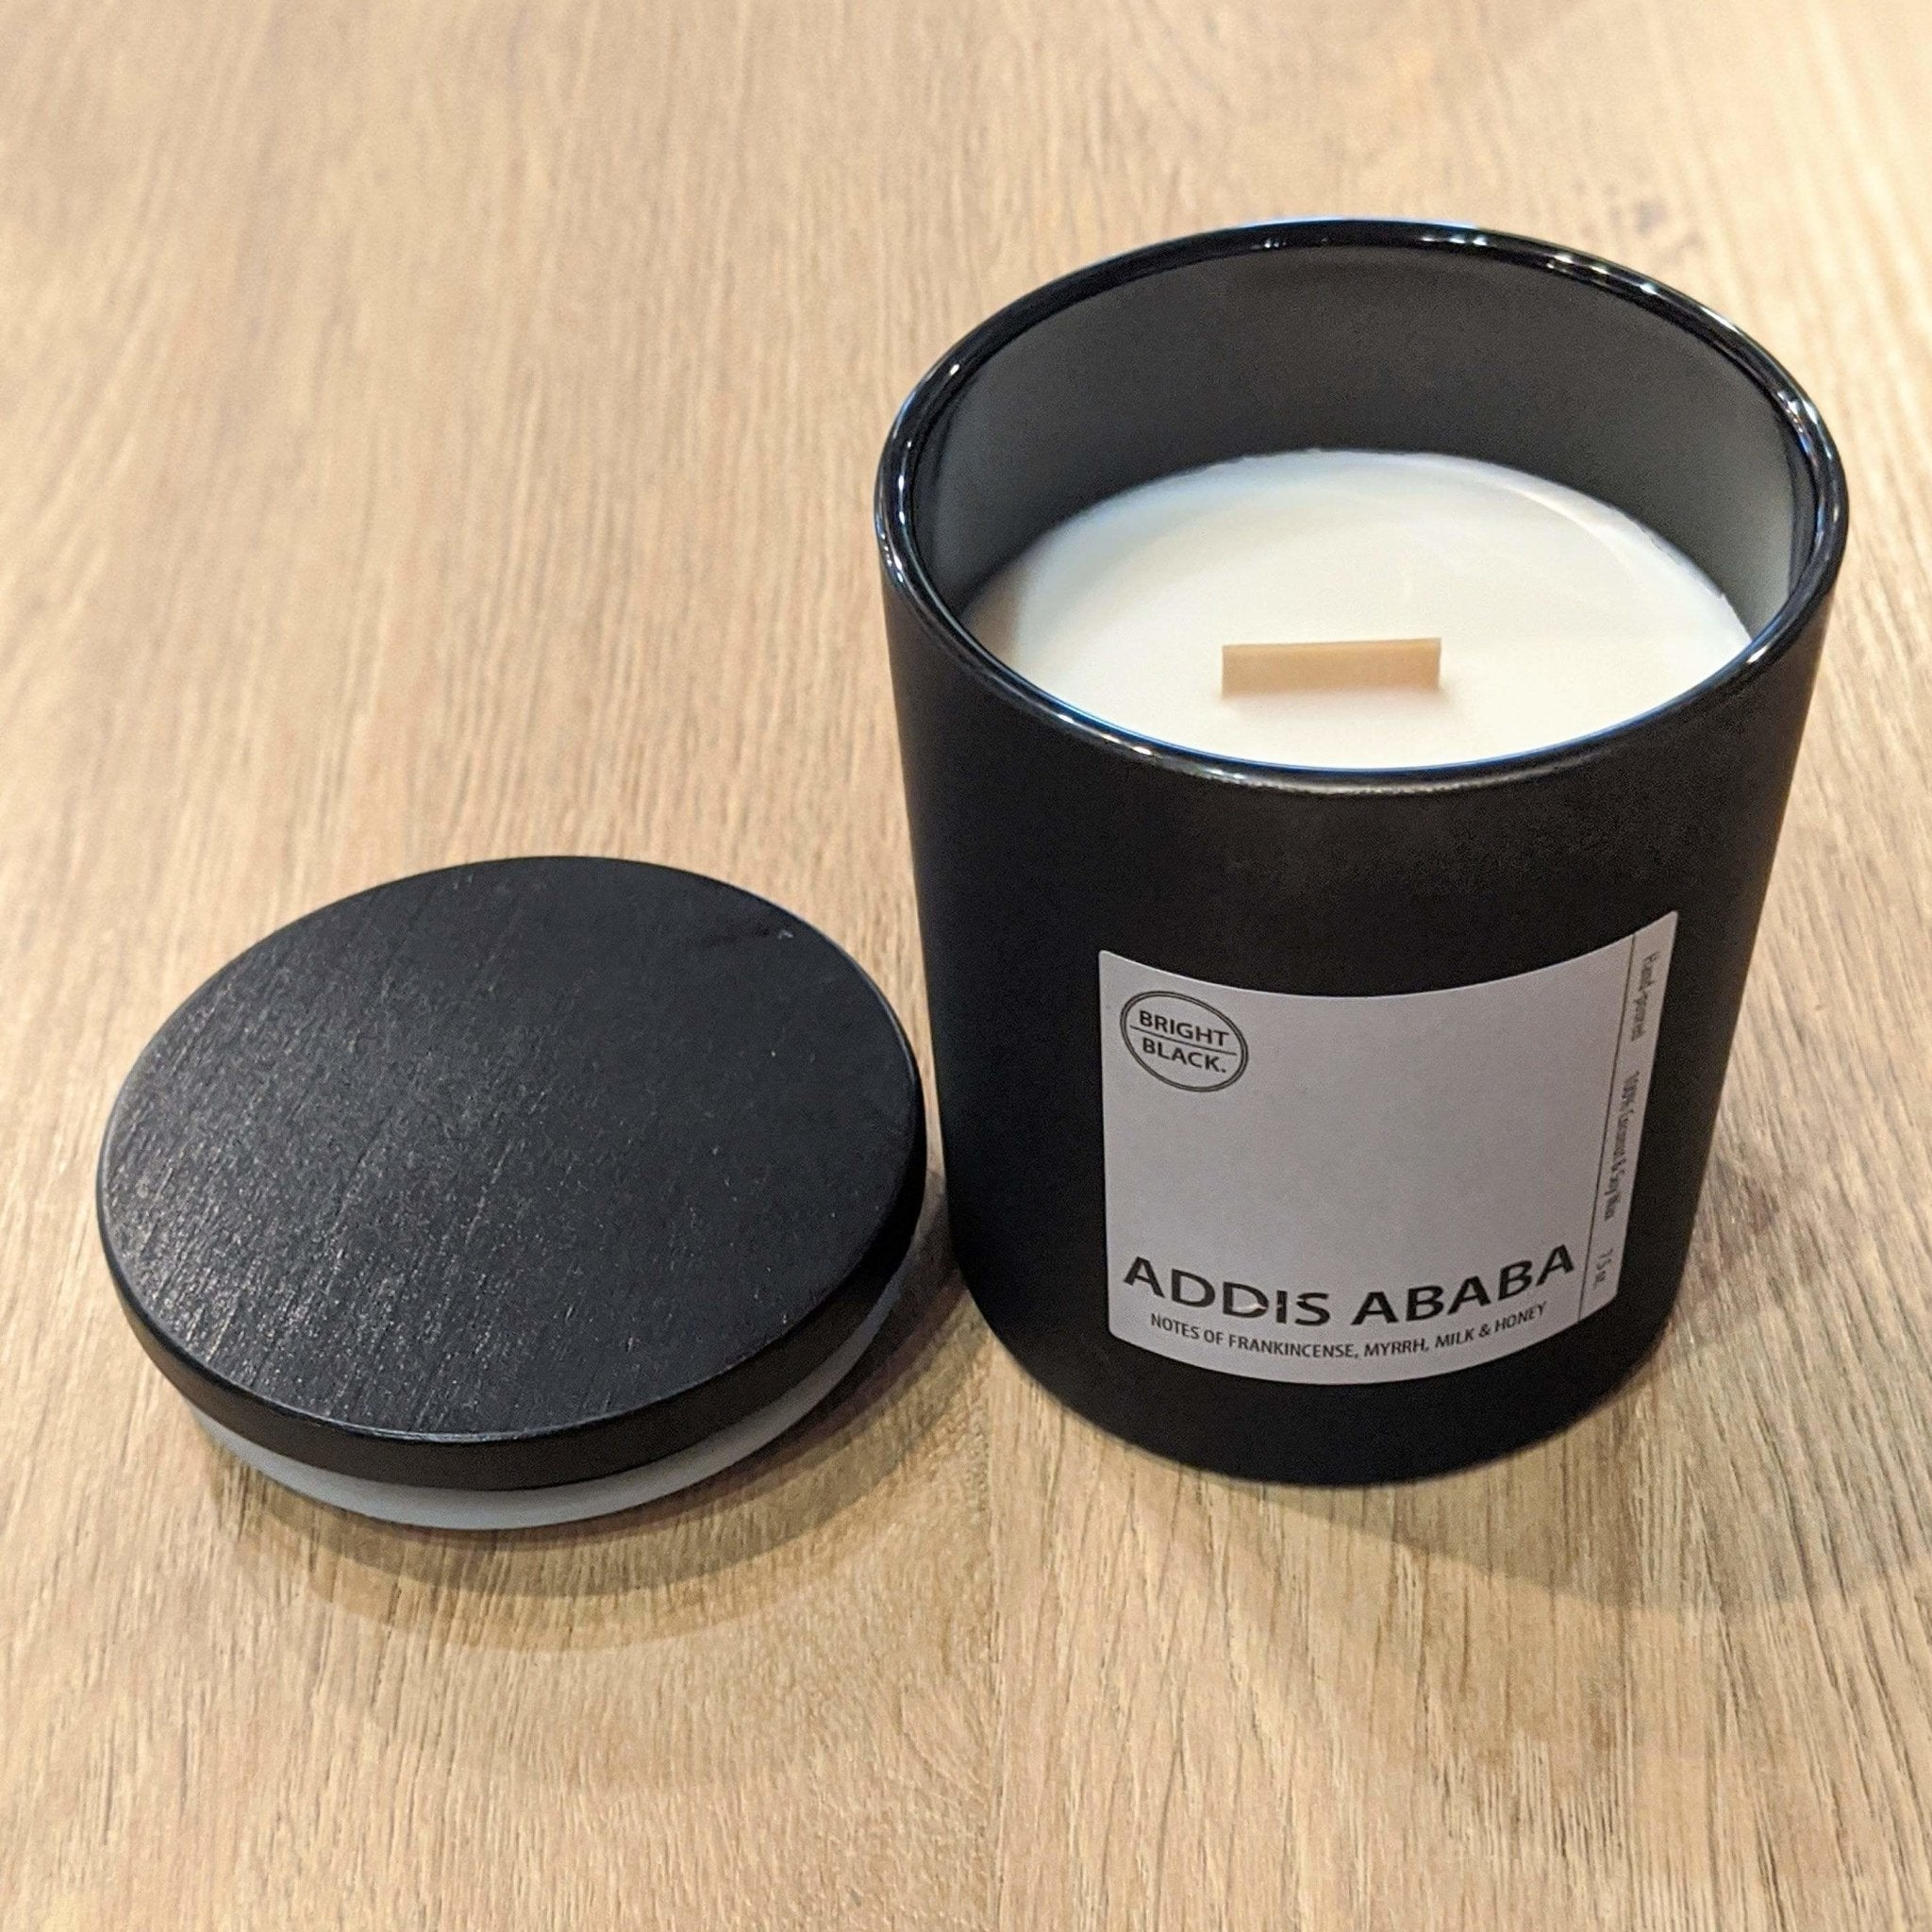 Addis Ababa Candle - Bright Black Candles -Freehand Market